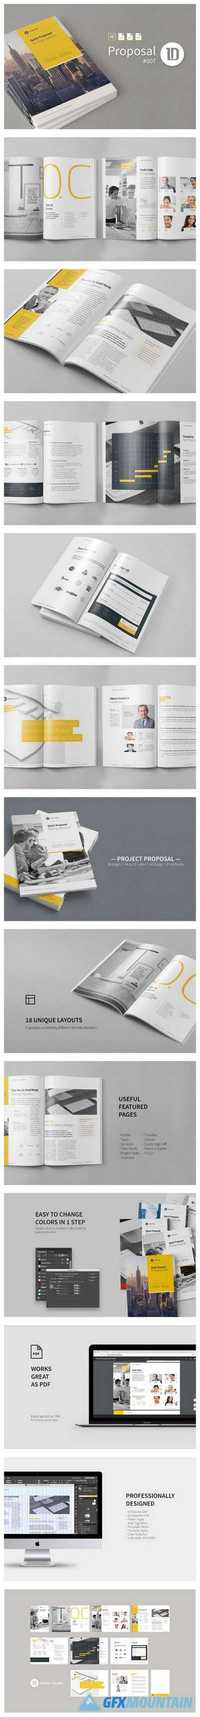 Quick Proposal 007 - The Essentials 896929